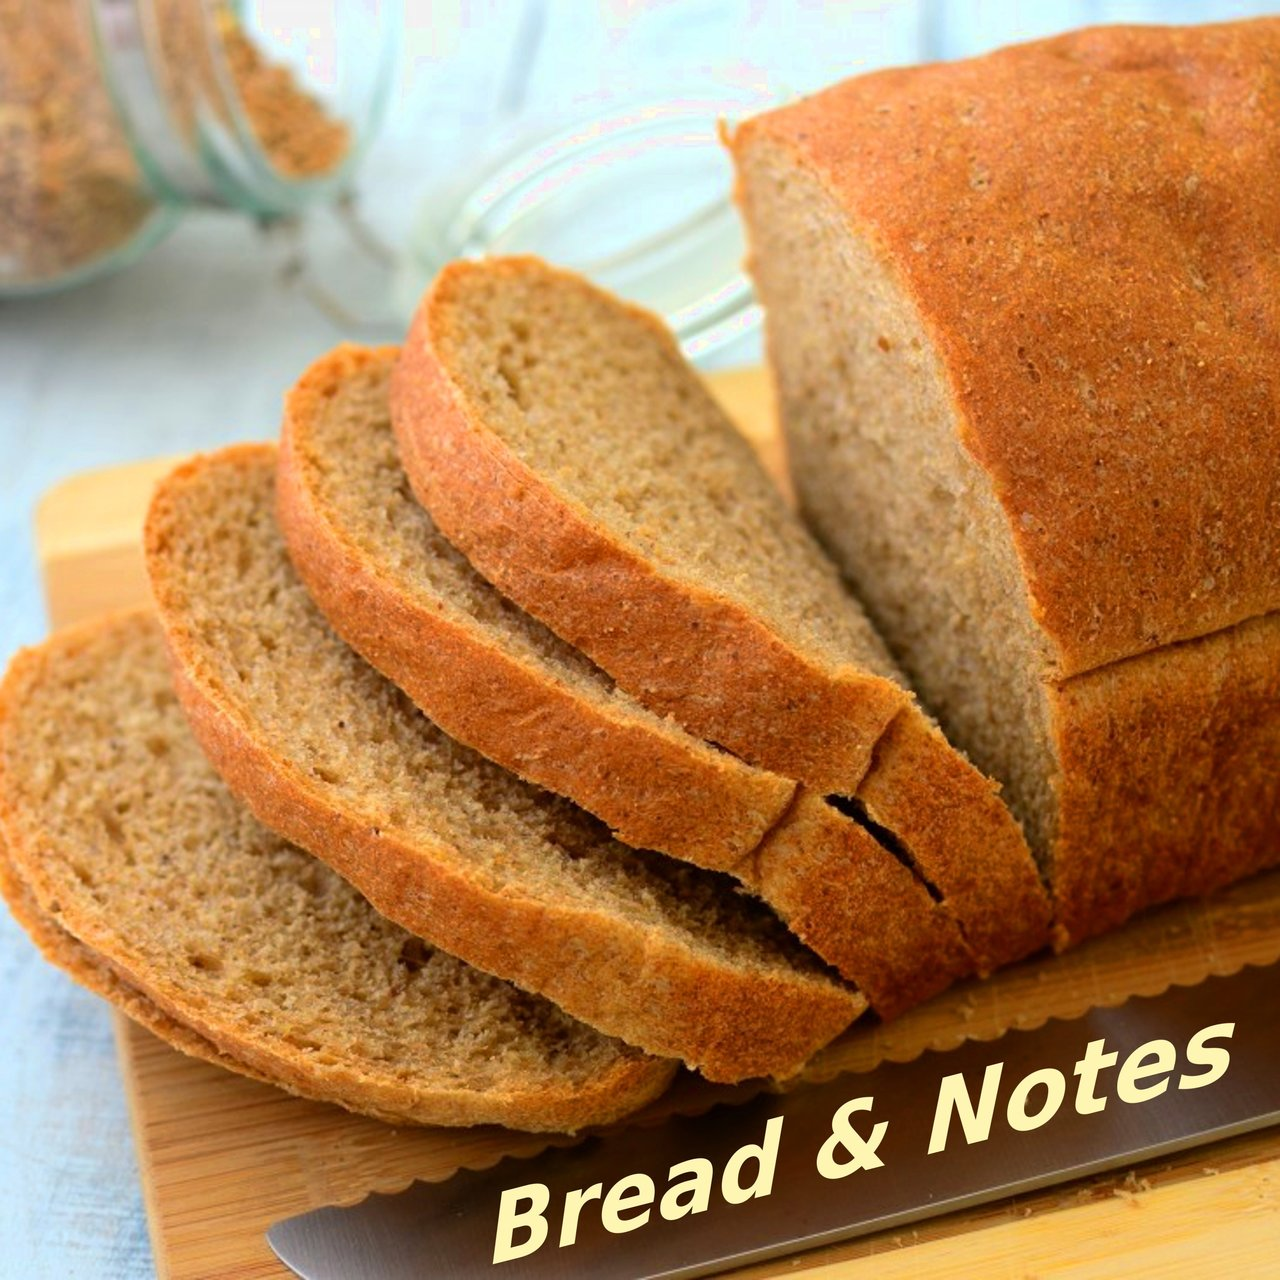 Bread and Notes